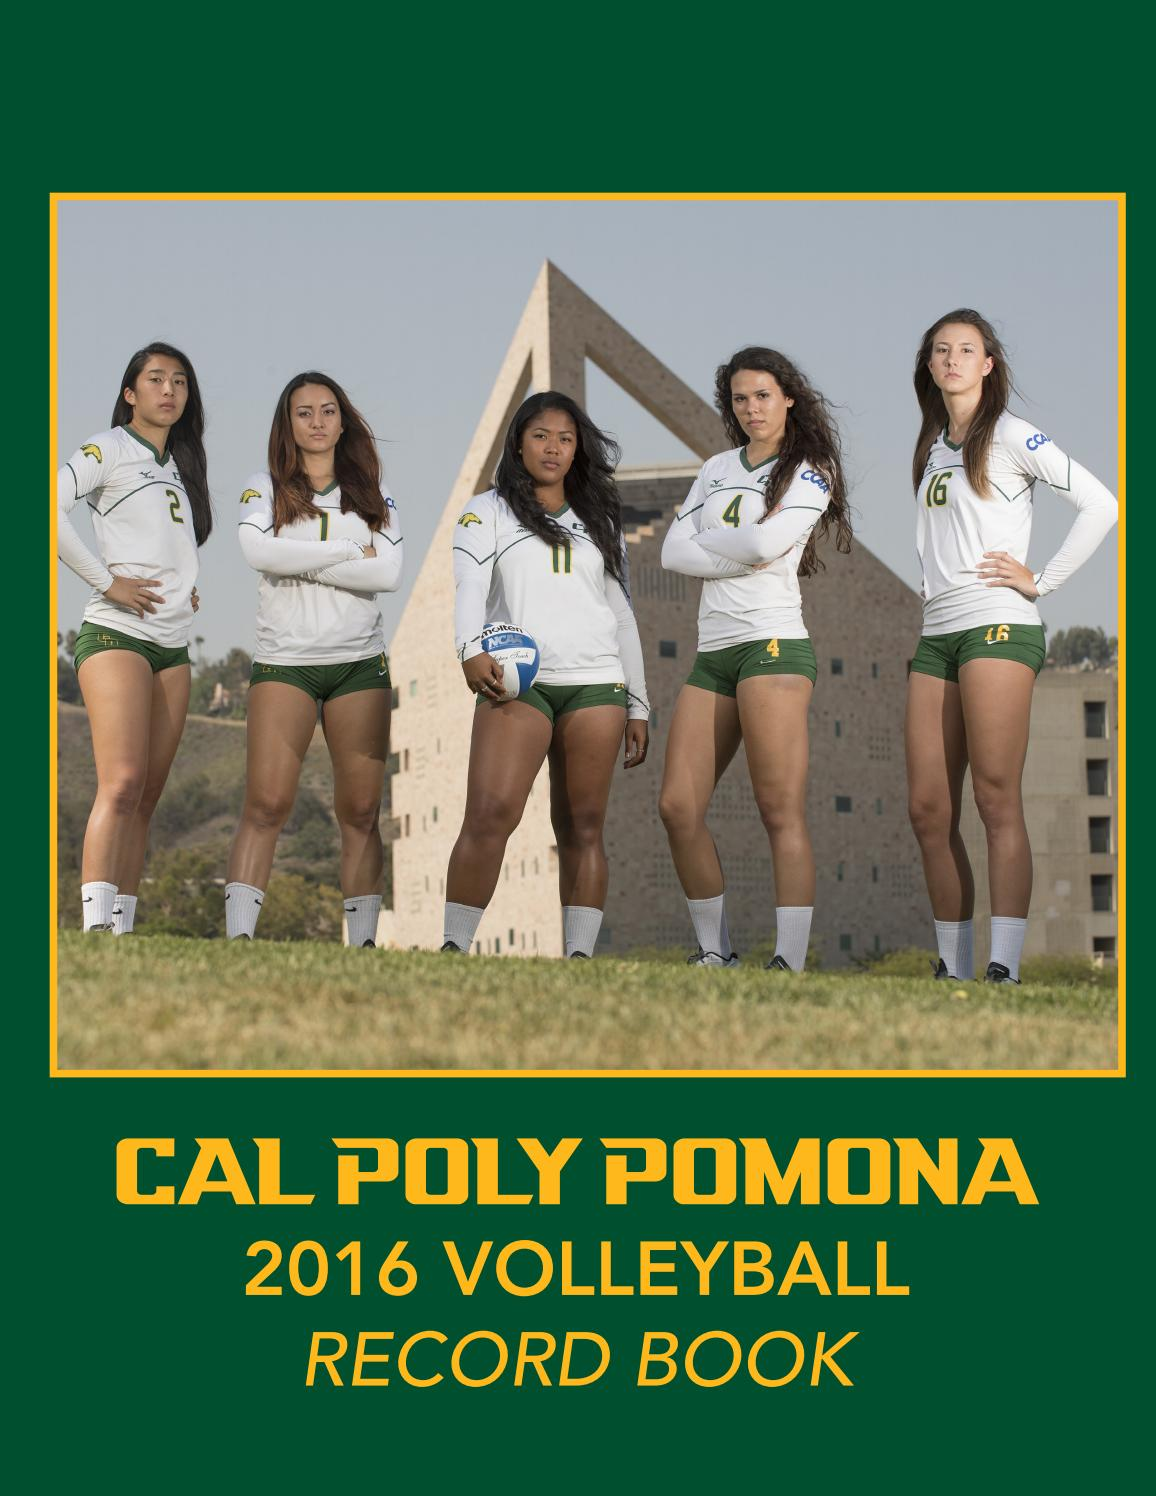 Cal Poly Pomona Volleyball 2016 Record Book By Billy Bronco Issuu